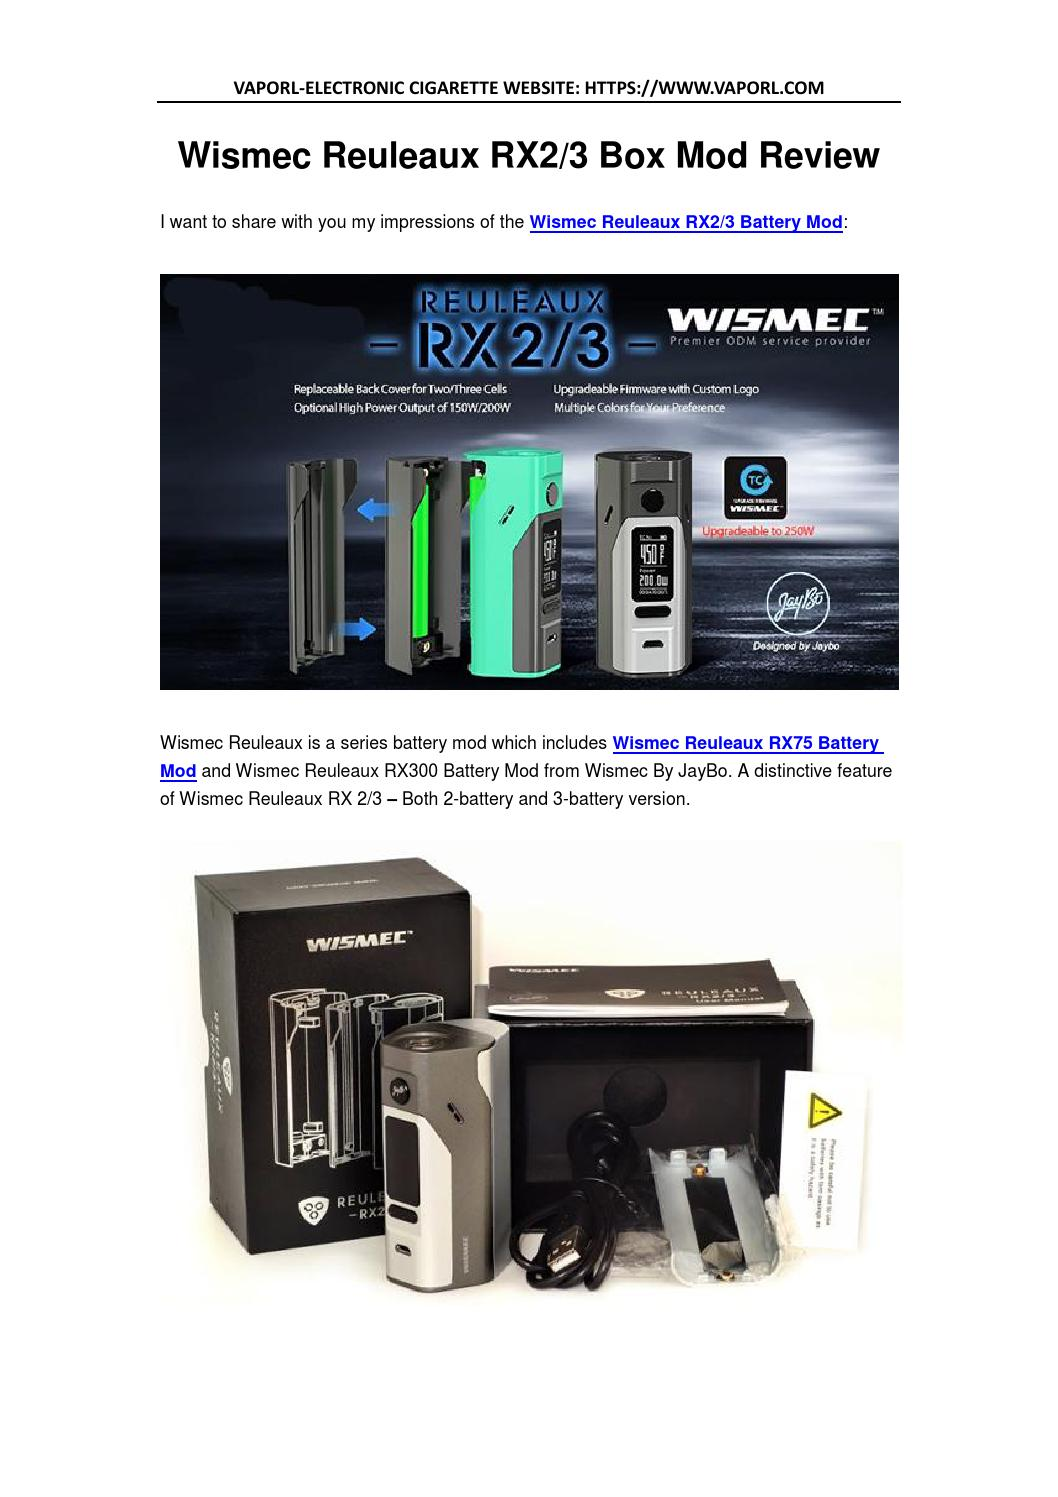 Wismec Reuleaux RX2/3 Review by ecig vape - issuu